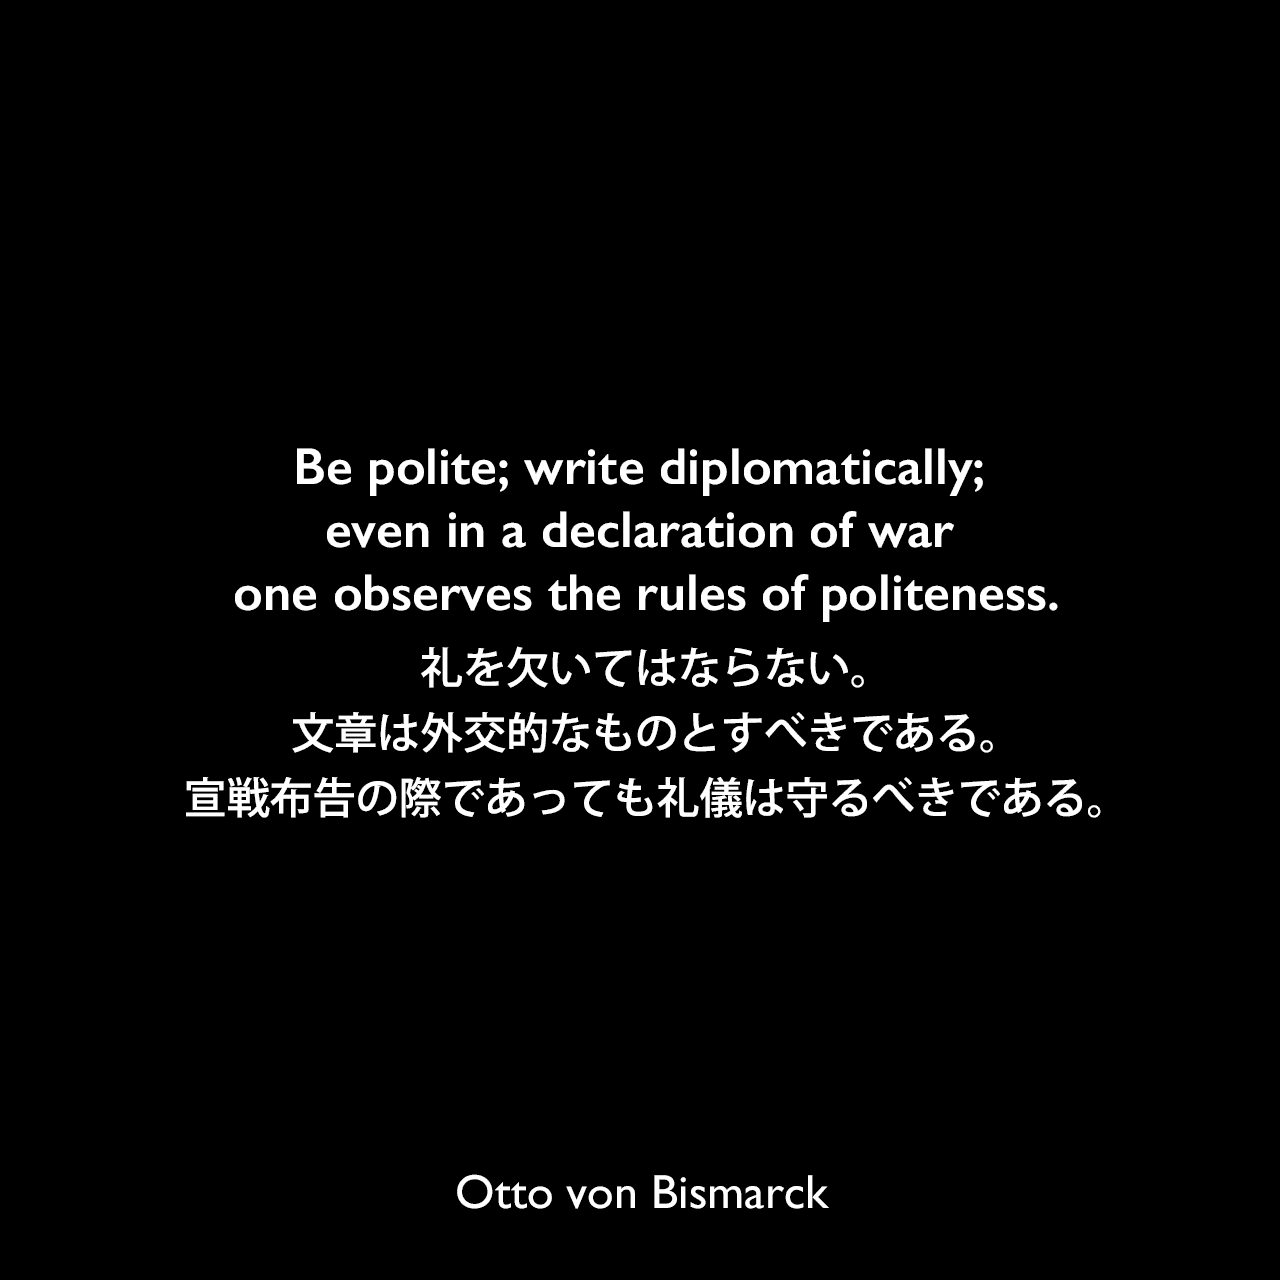 Be polite; write diplomatically; even in a declaration of war one observes the rules of politeness.礼を欠いてはならない。文章は外交的なものとすべきである。宣戦布告の際であっても礼儀は守るべきである。Otto von Bismarck